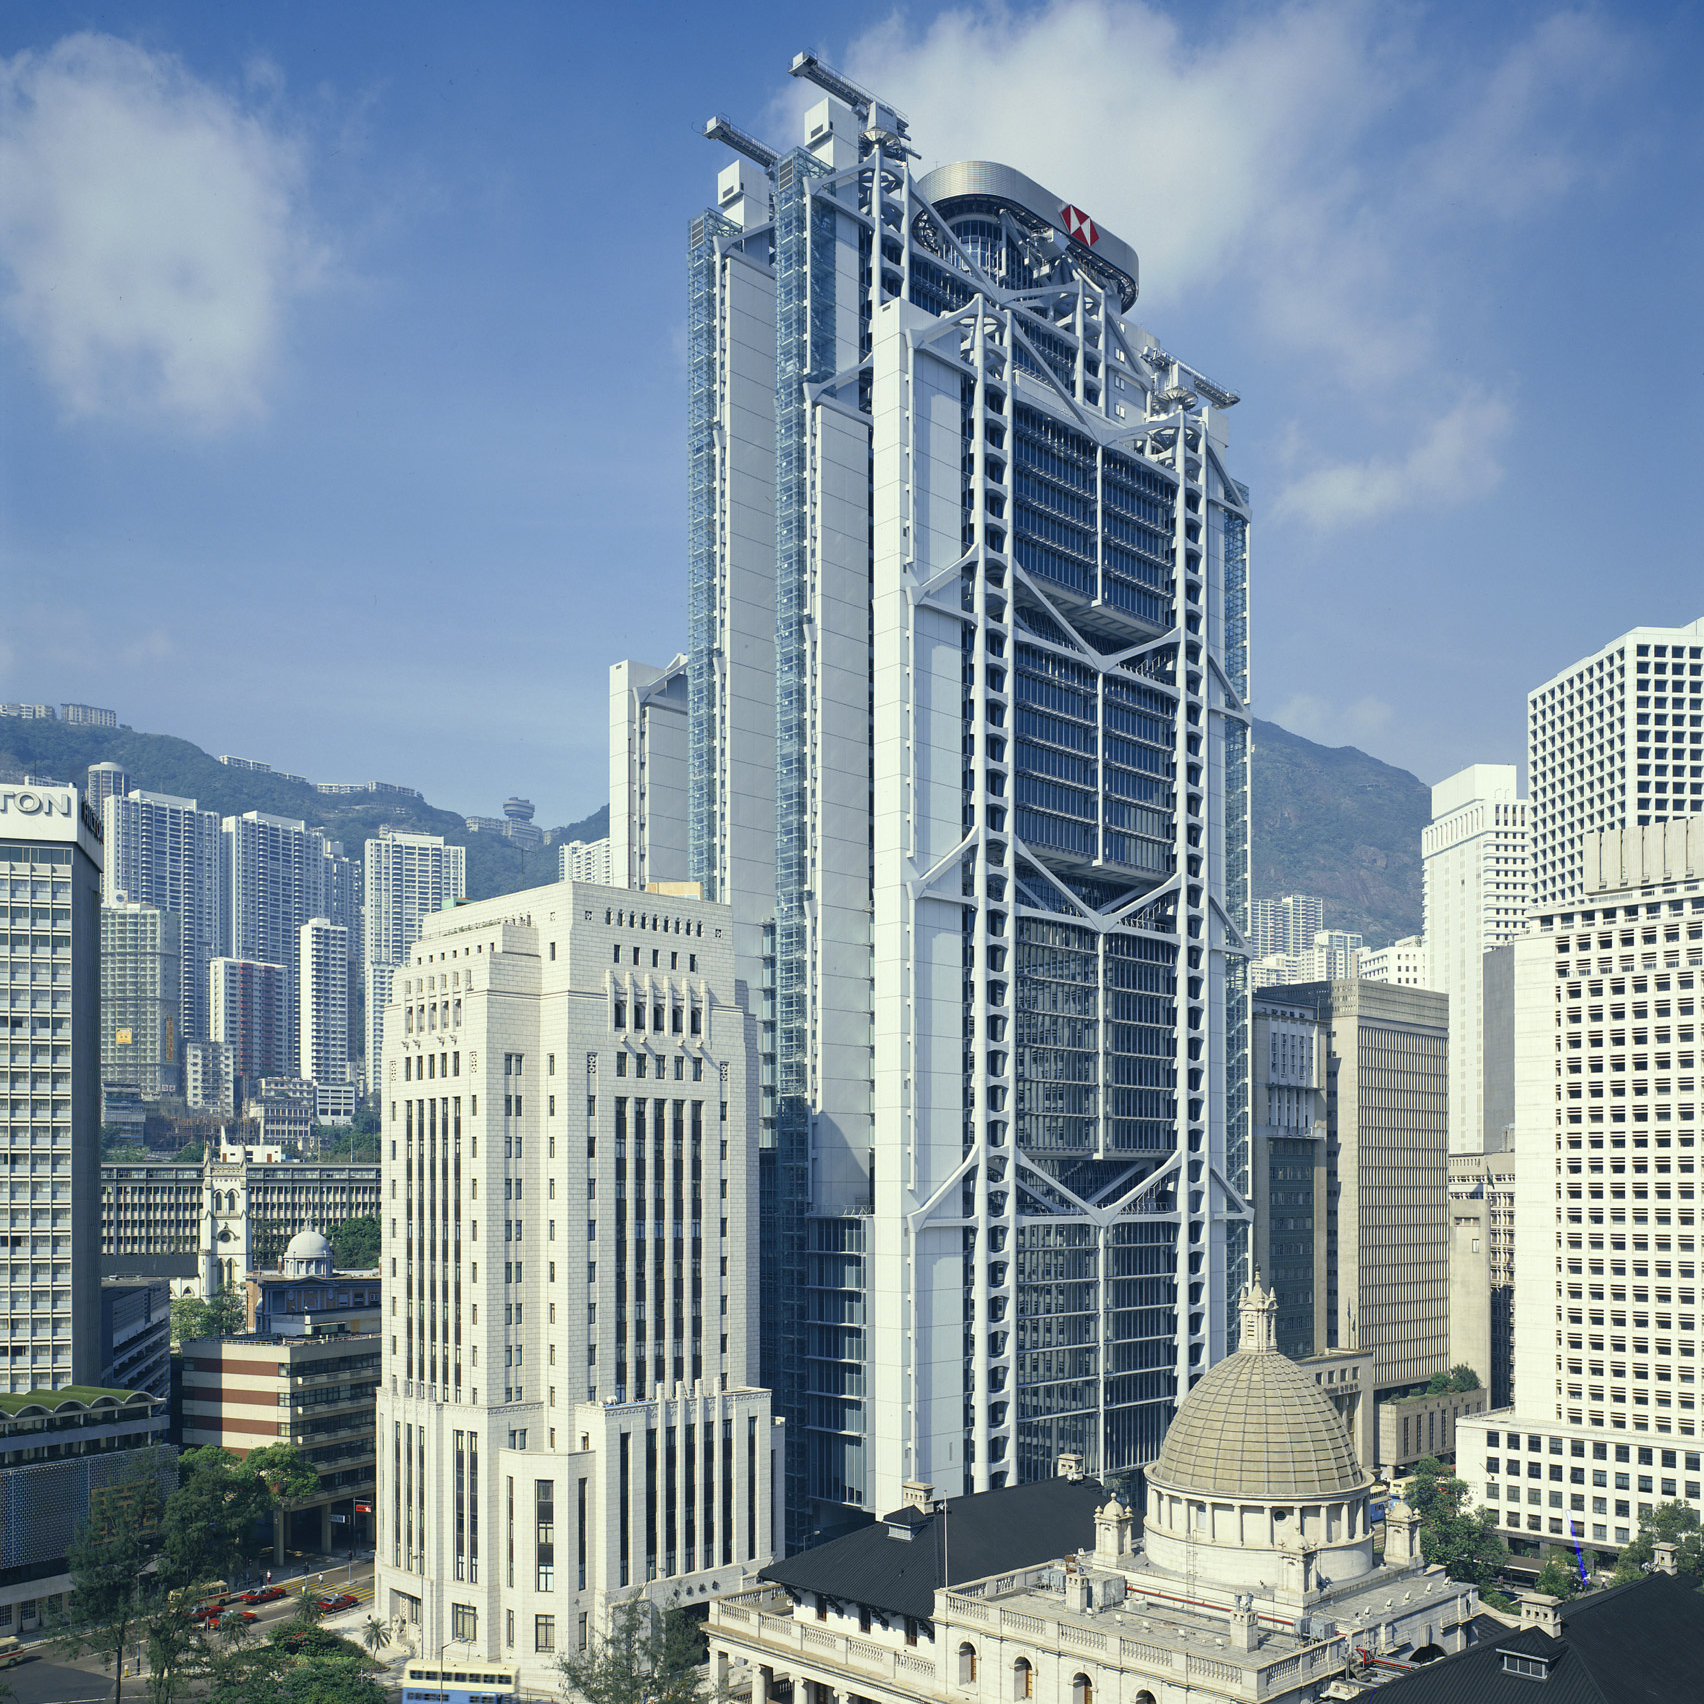 High-tech buildings: HSBC Building in Hong Kong by Norman Foster